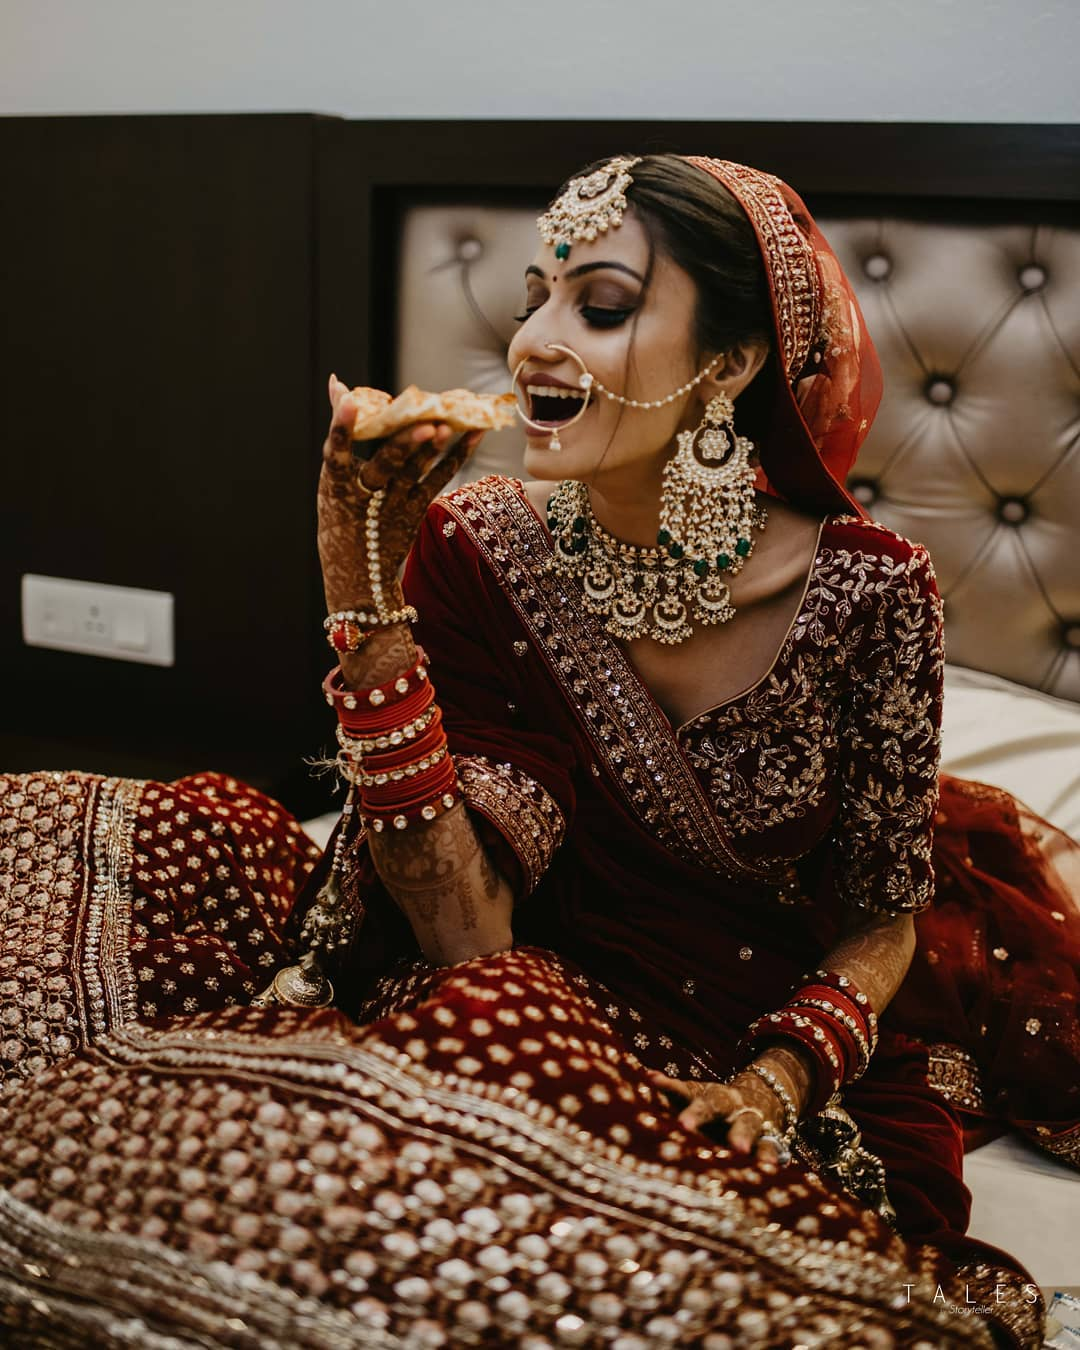 The food junkie: Real Bridal Looks, Styles & Dresses Inspirations